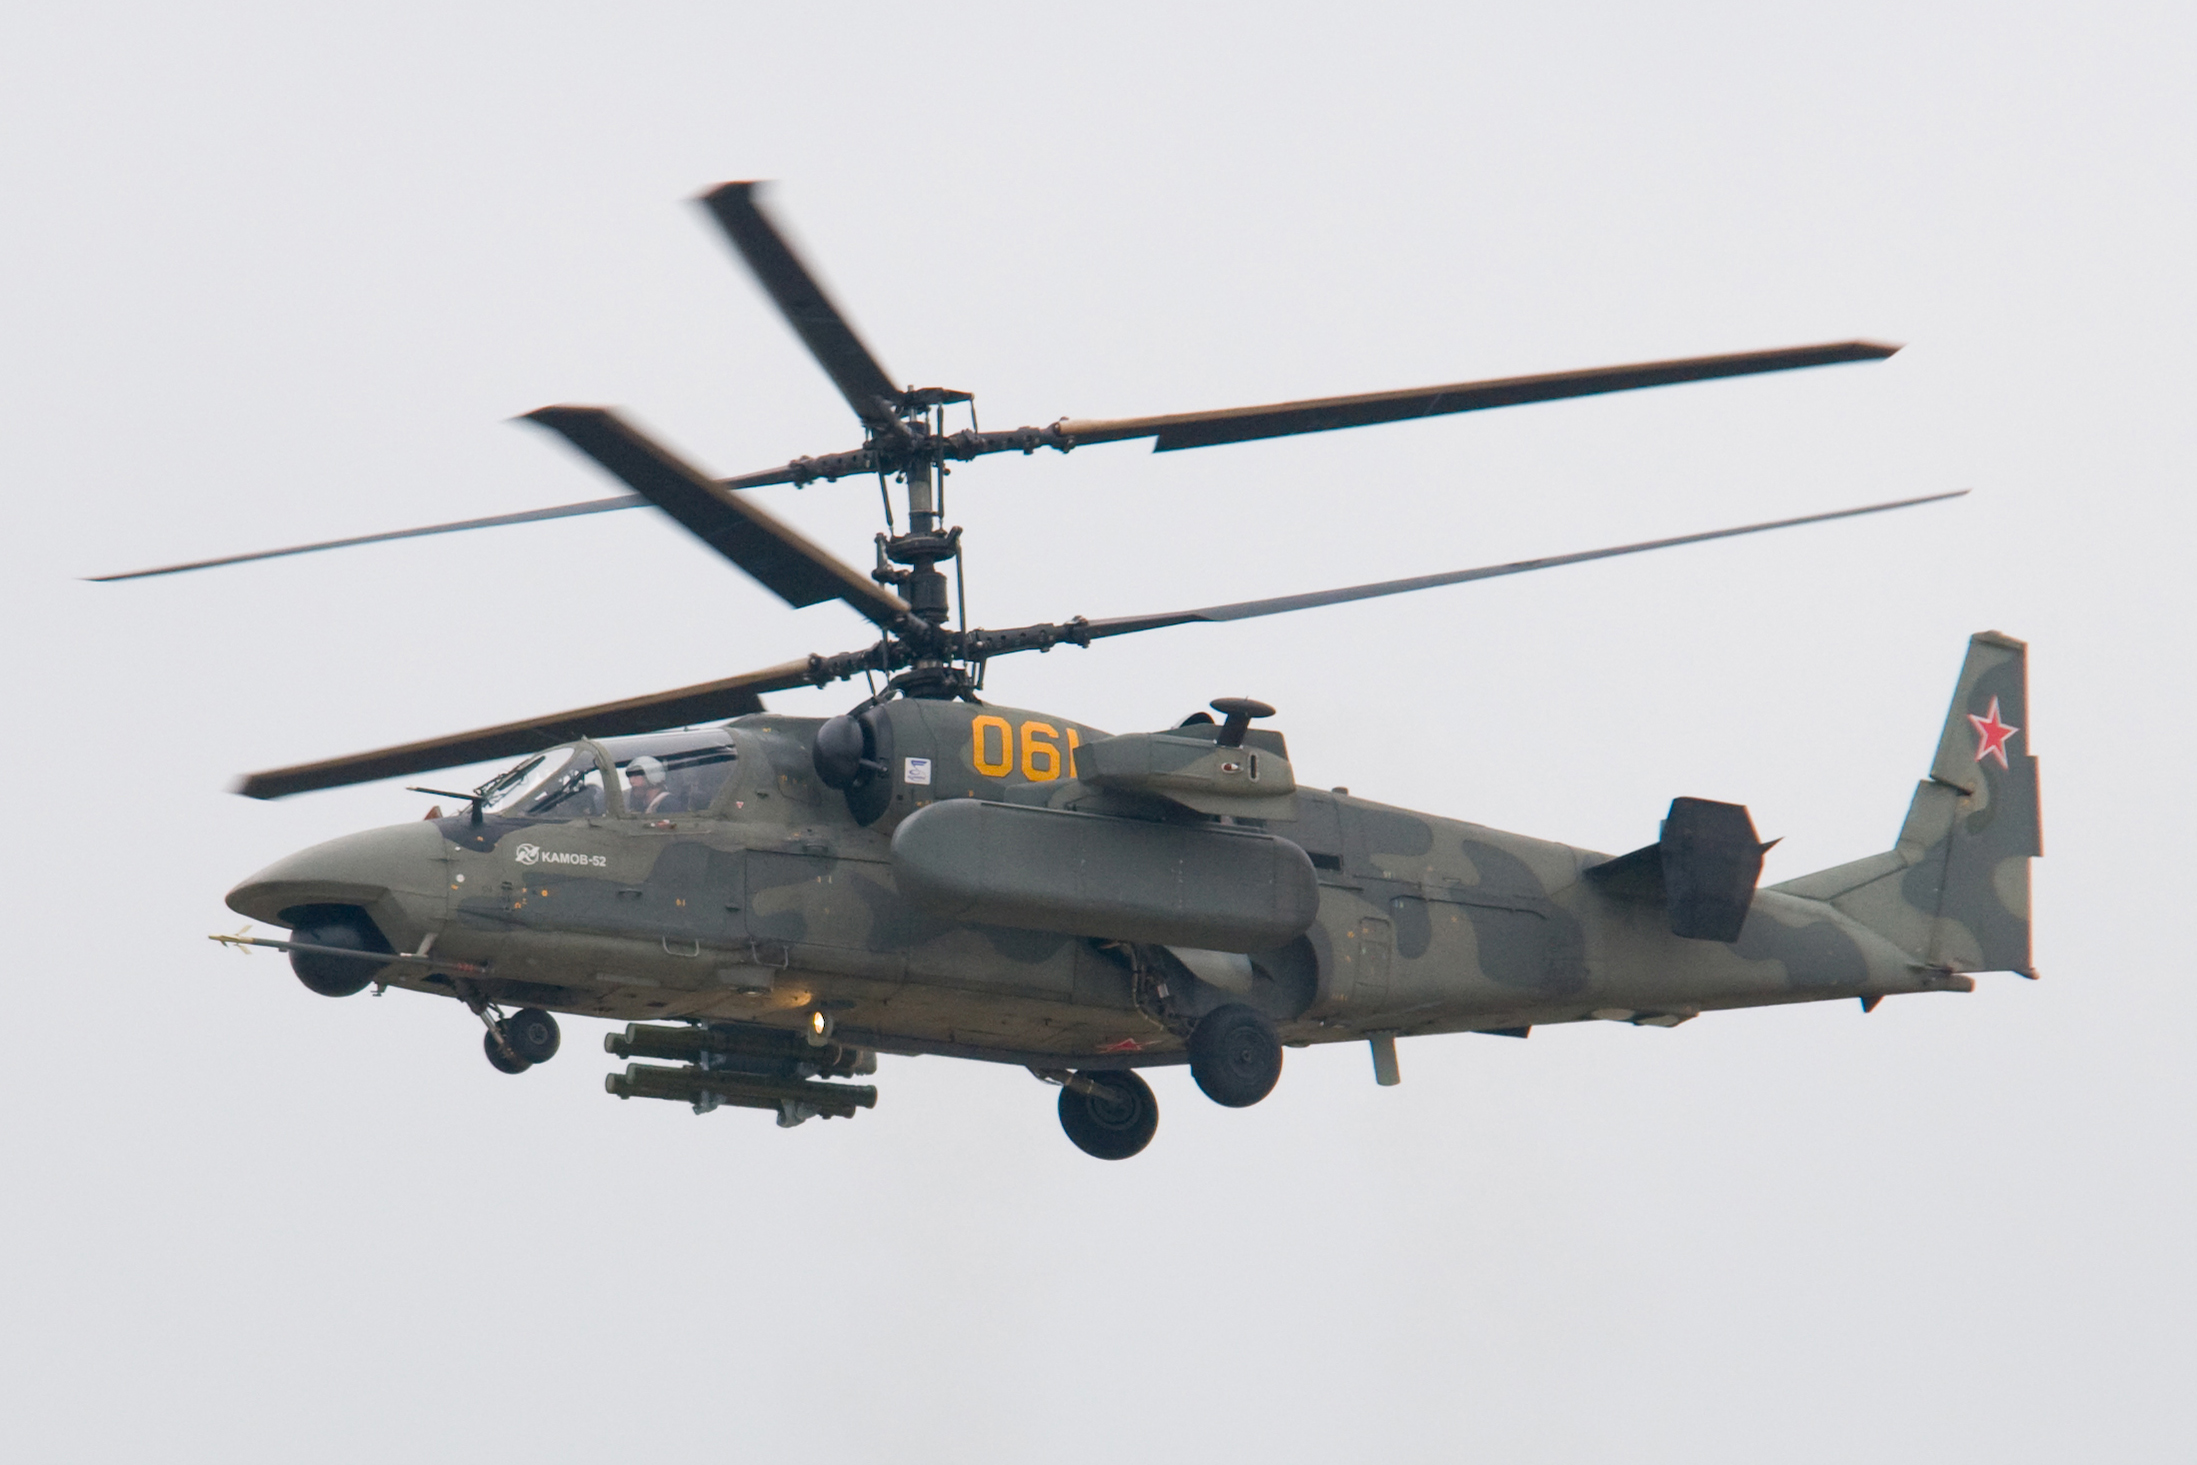 Kamov Ka-50 - Wikipedia, the free encyclopedia